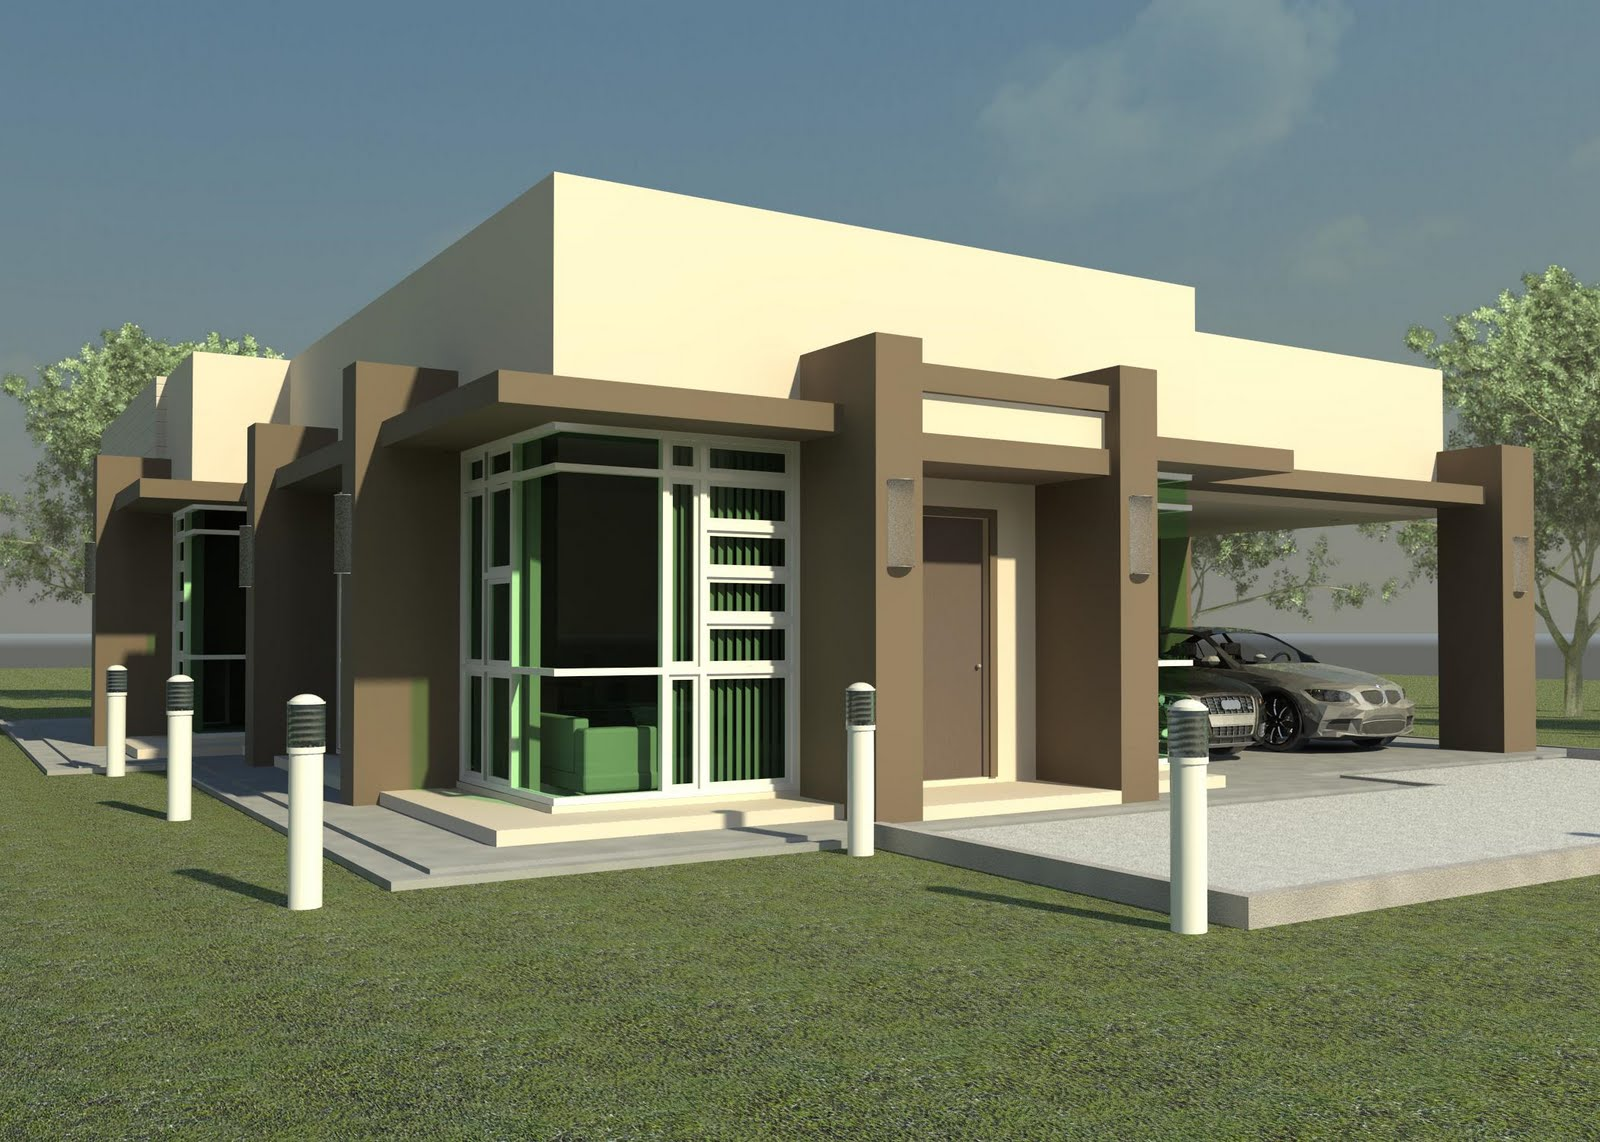 New home designs latest modern small homes designs exterior for New home designs